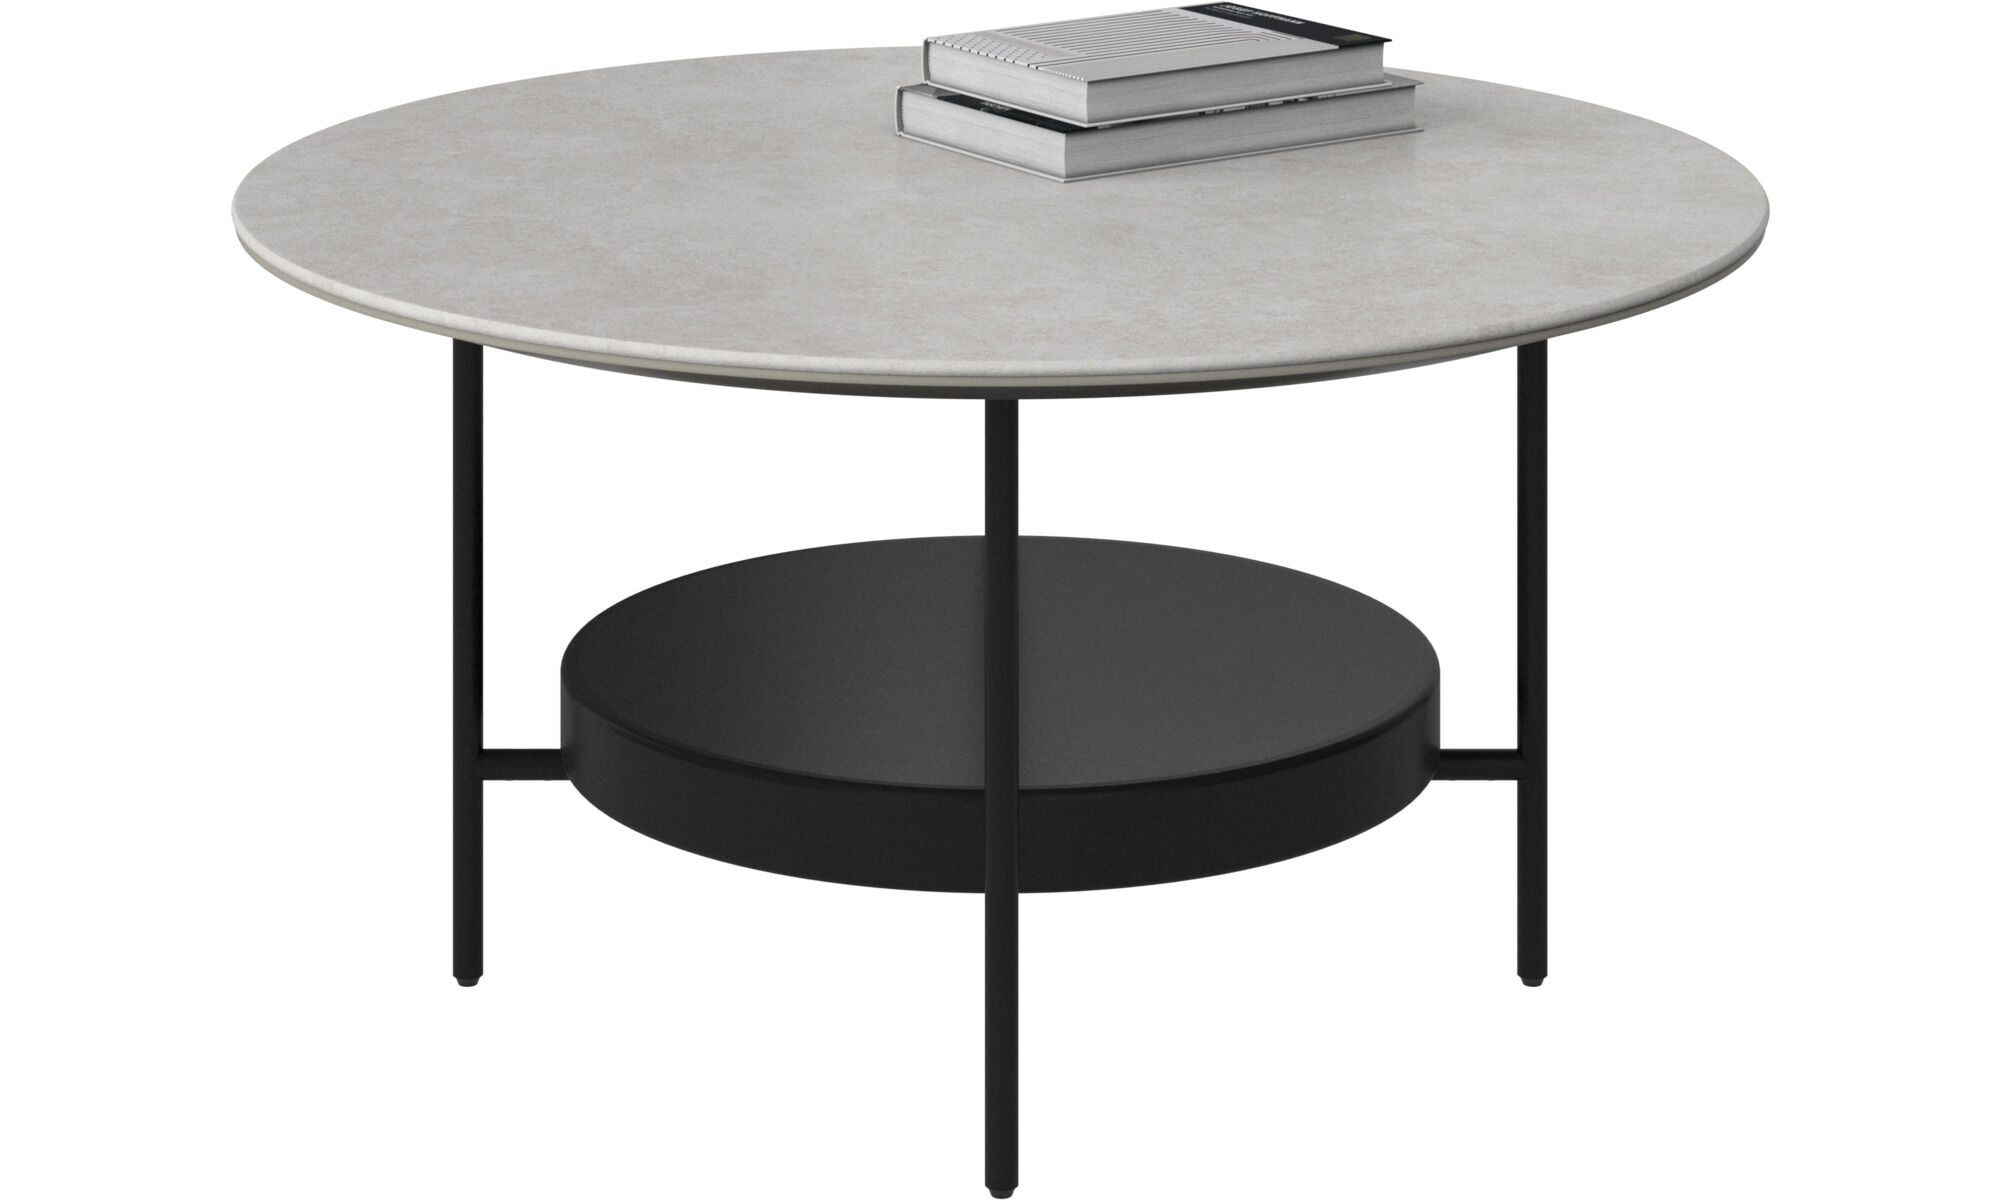 Coffee Tables   Madrid Coffee Table   Round   Gray   Ceramic